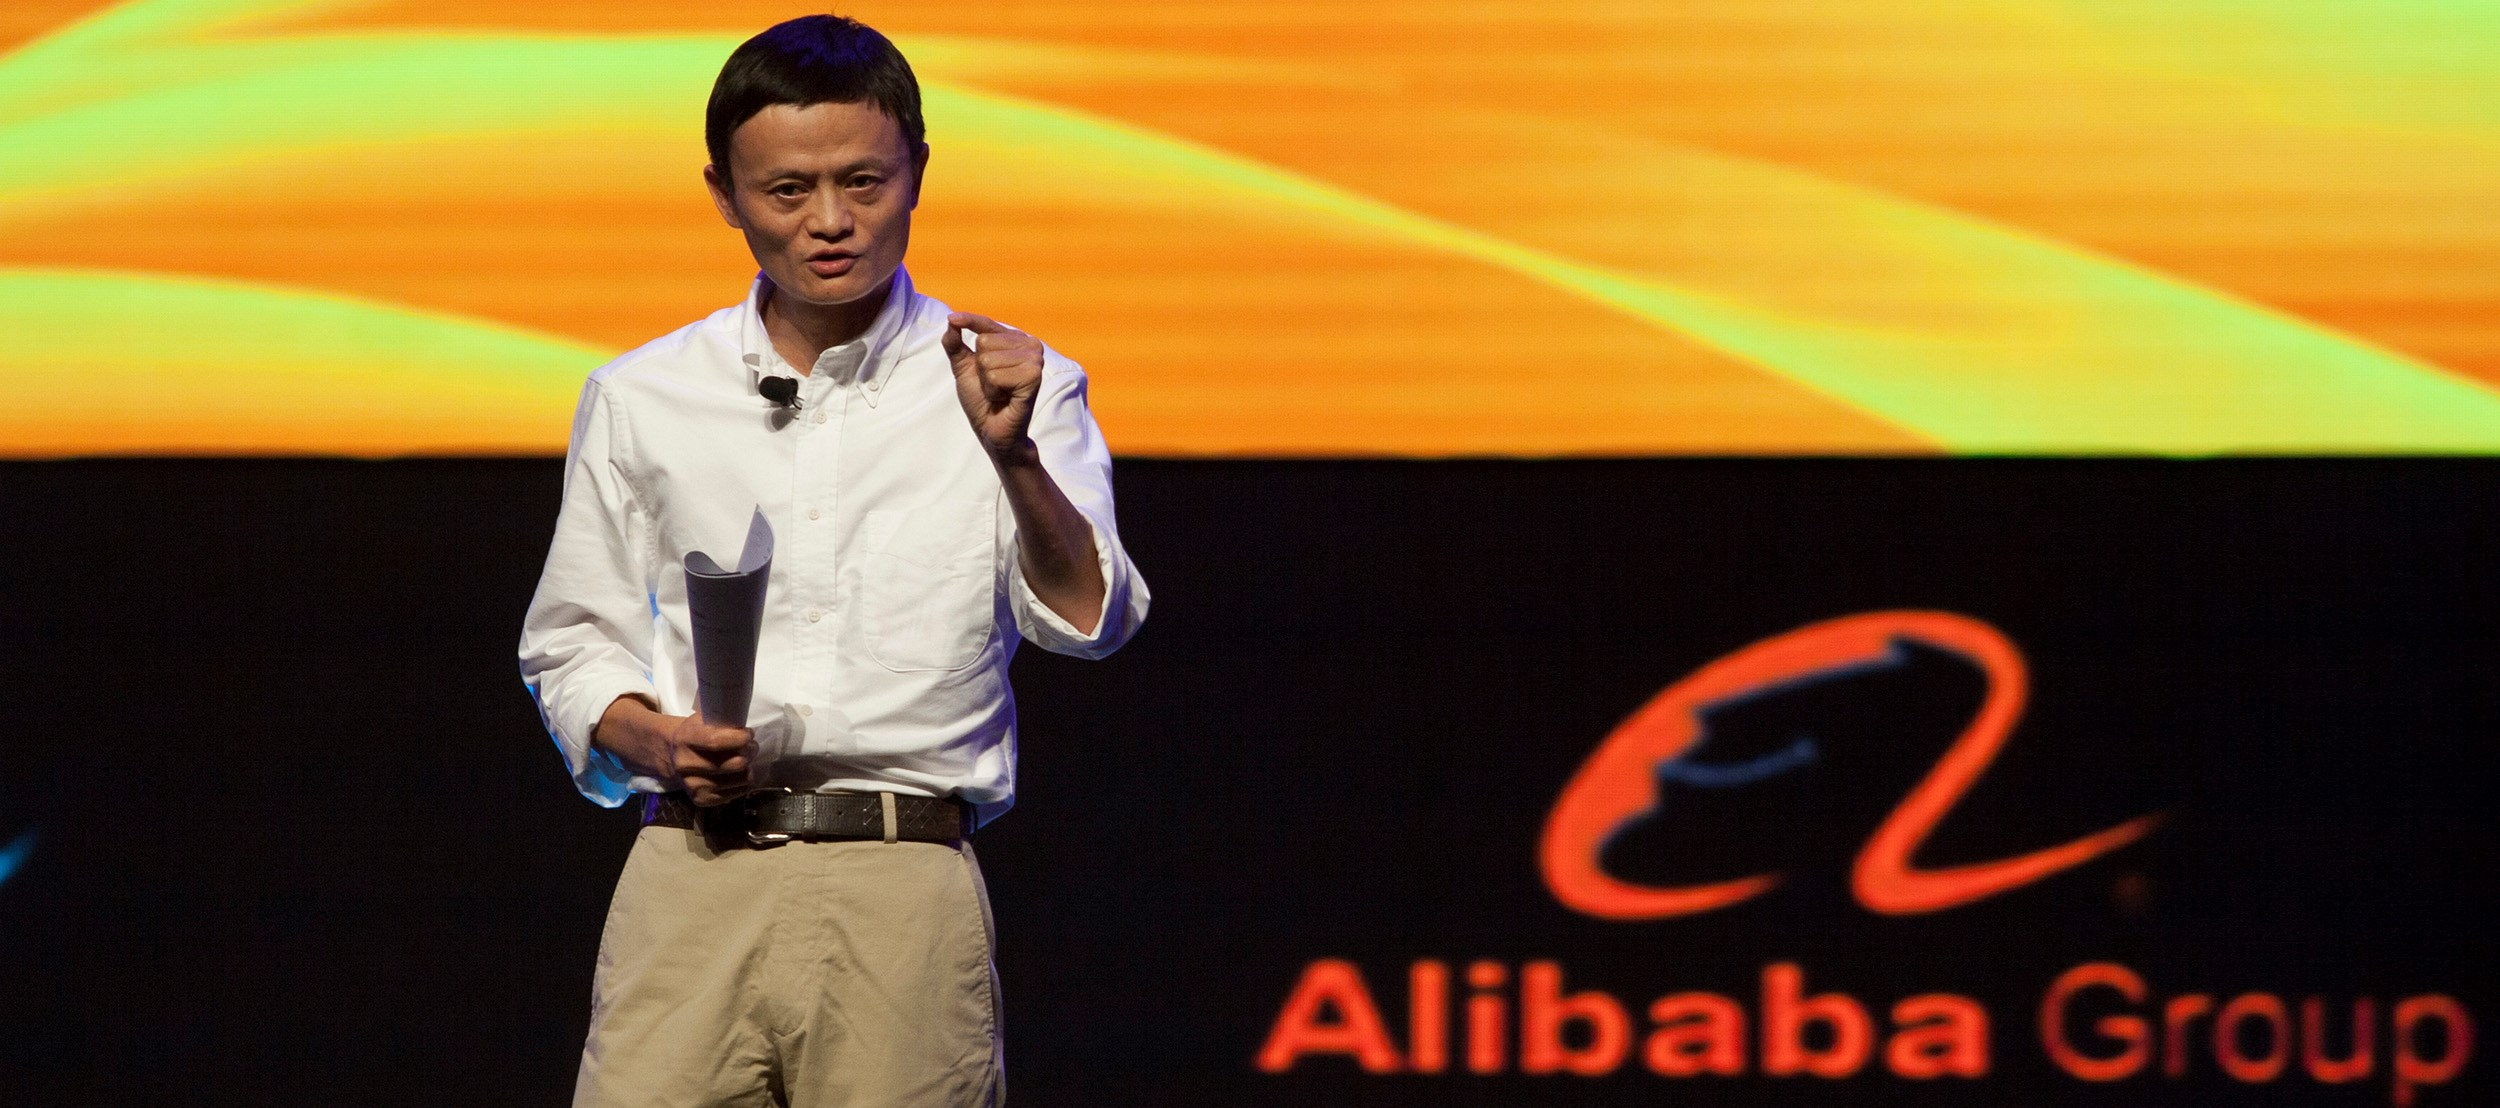 Jack Mae CEO in Alibaba. Photo: Dreamstime